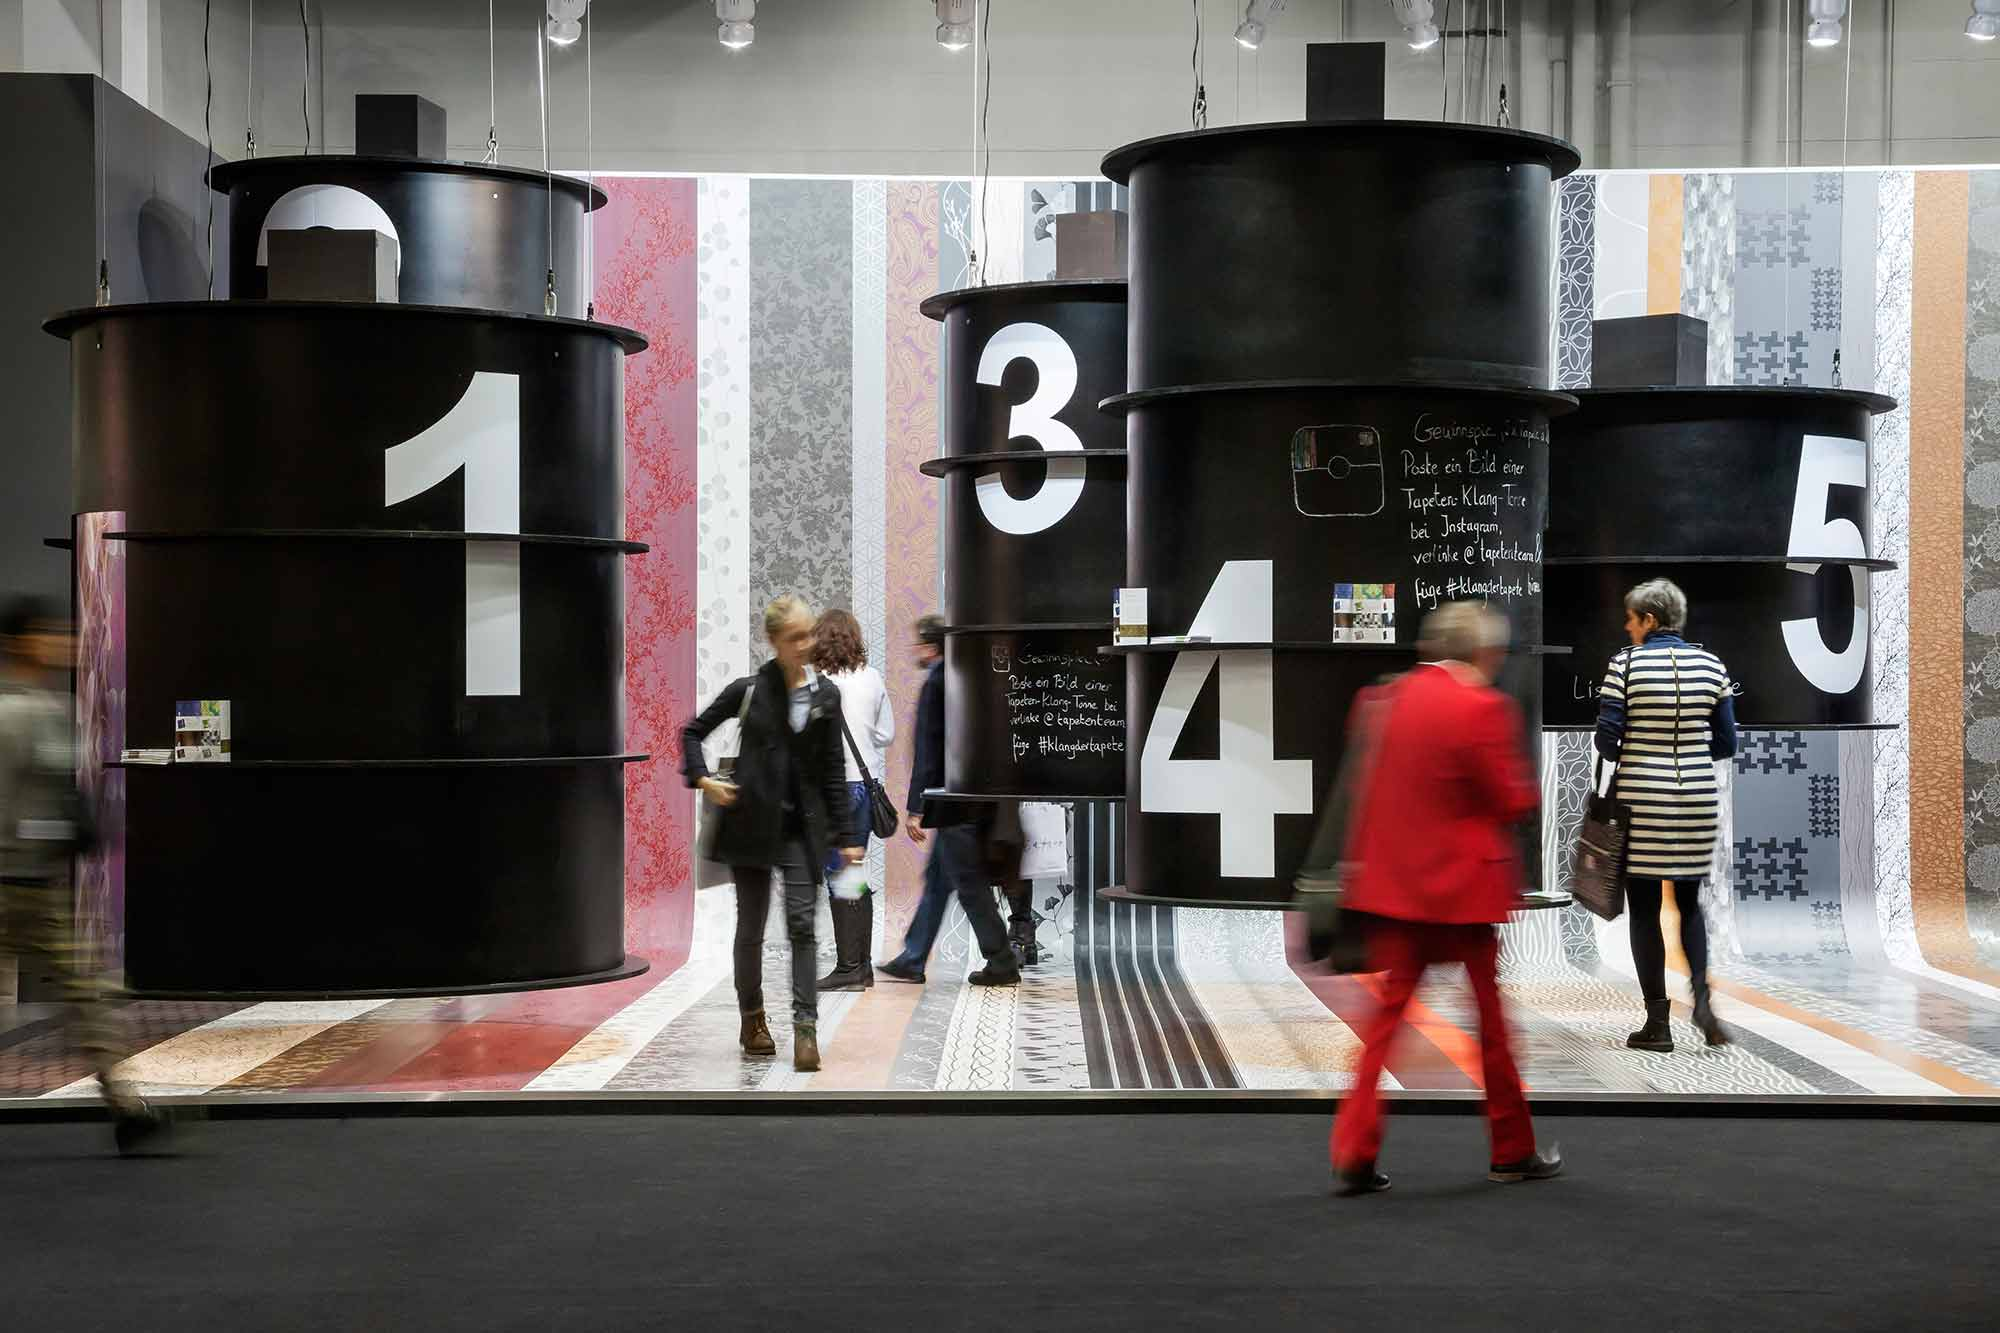 The Event You Must Attend In January, Welcome To IMM Cologne 2019 3 imm cologne 2019 The Event You Must Attend In January, Welcome To IMM Cologne 2019 The Event You Must Attend In January Welcome To IMM Cologne 2019 3